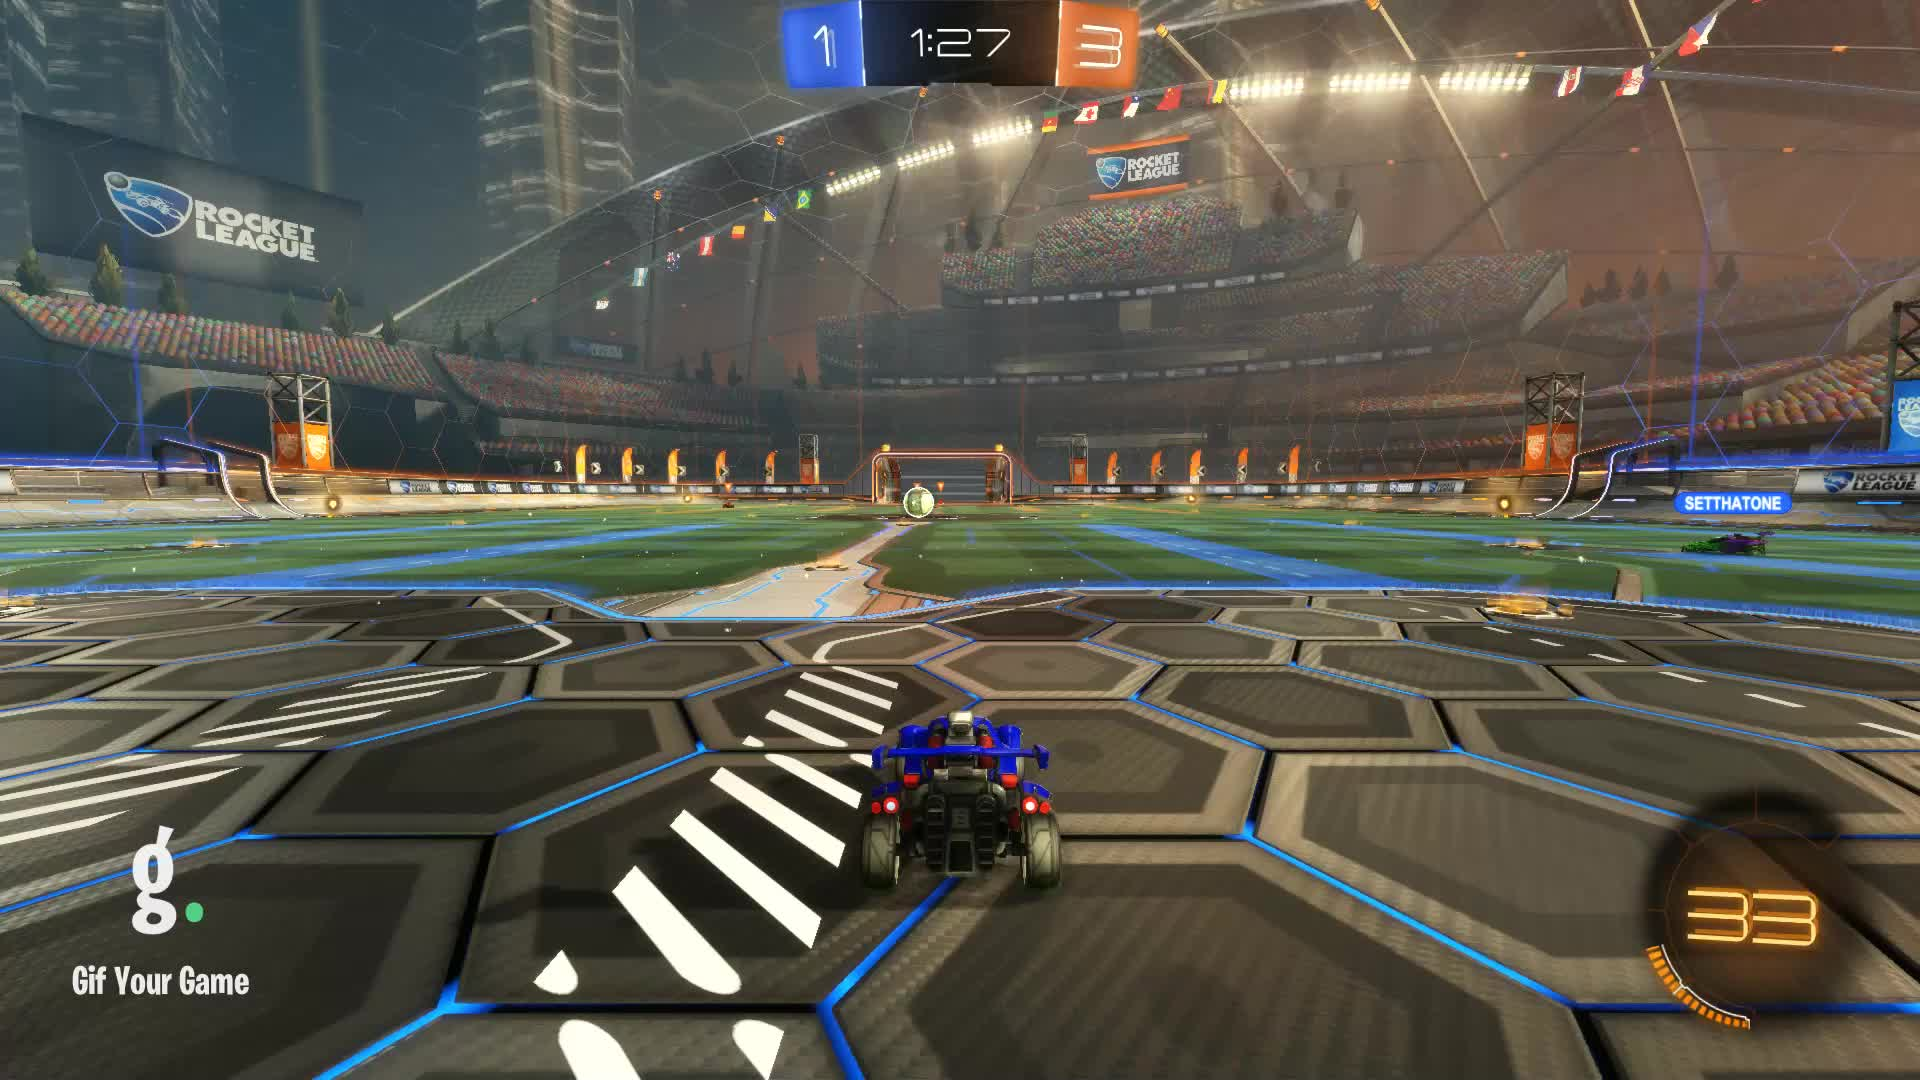 Cawth, Gif Your Game, GifYourGame, Goal, Rocket League, RocketLeague, Goal 5: Cawth GIFs